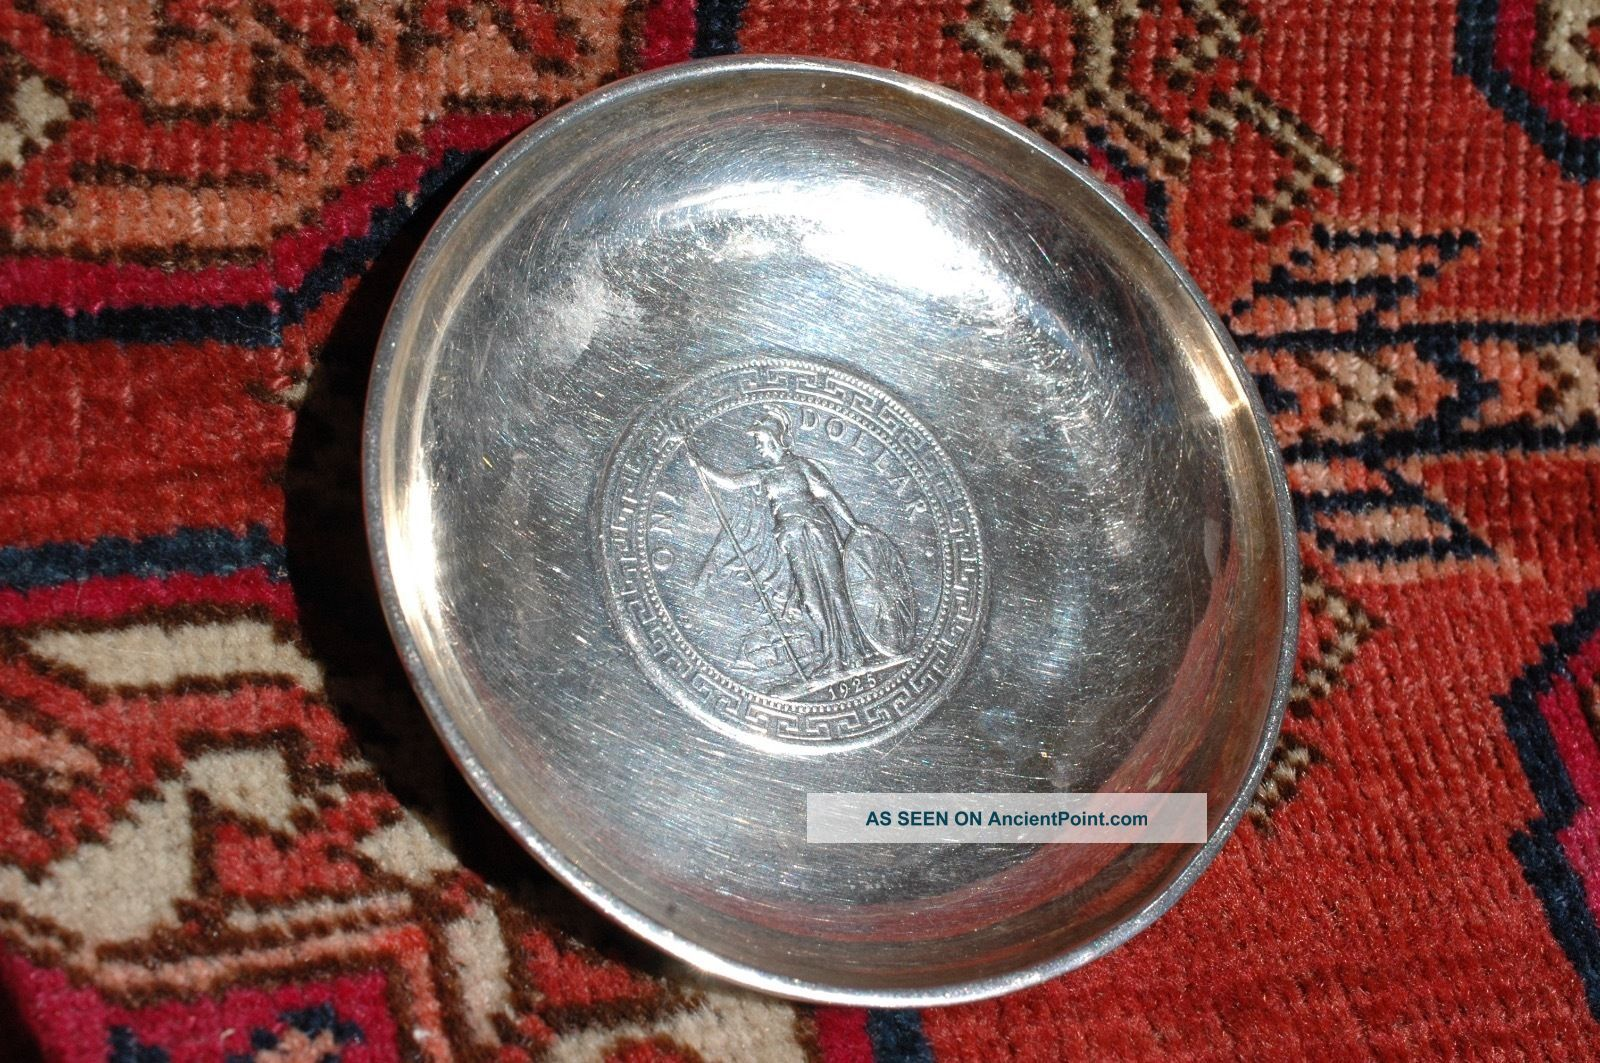 1925 Hong Kong Silver Dollar Coin & Tackhing Sterling Silver Dish Tray Dishes & Coasters photo